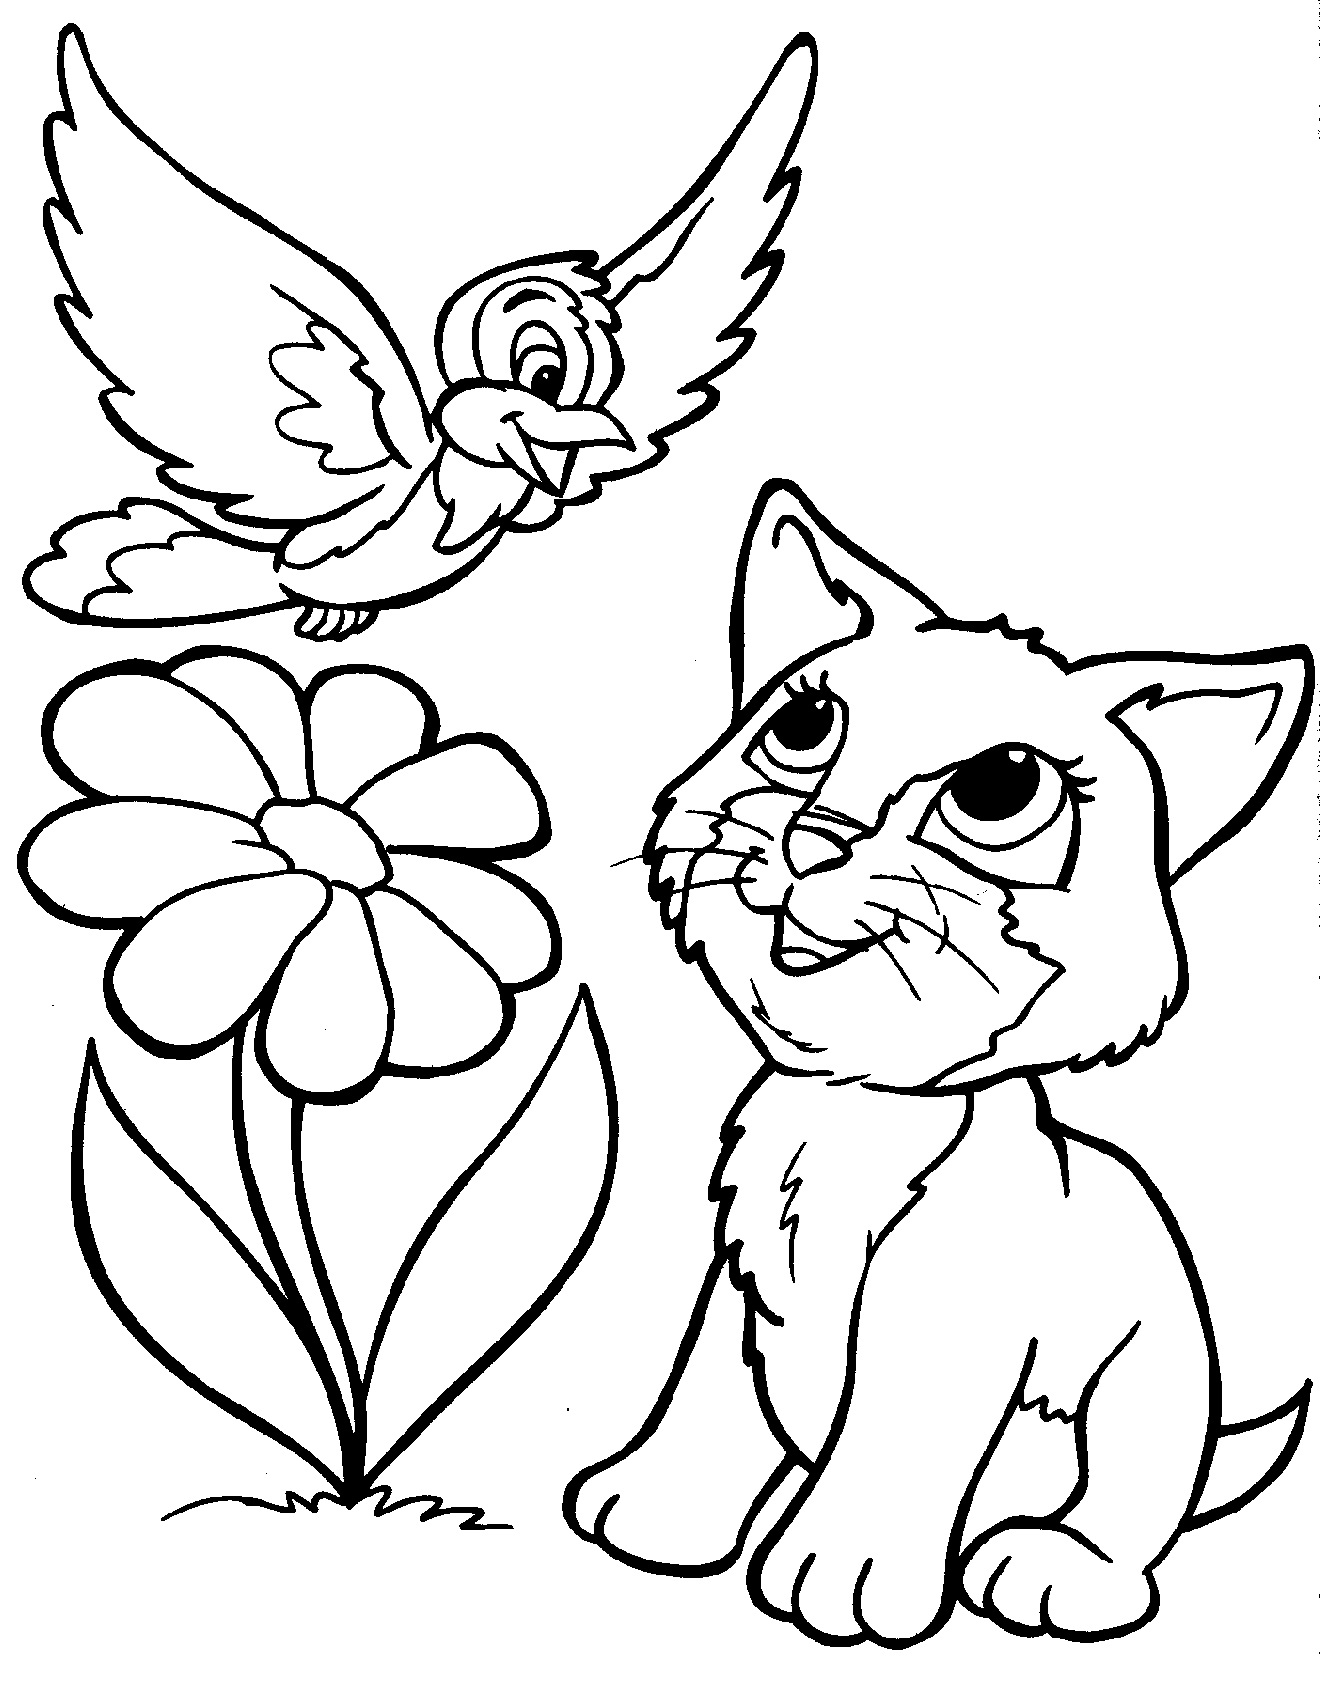 kitten coloring pages - koshka